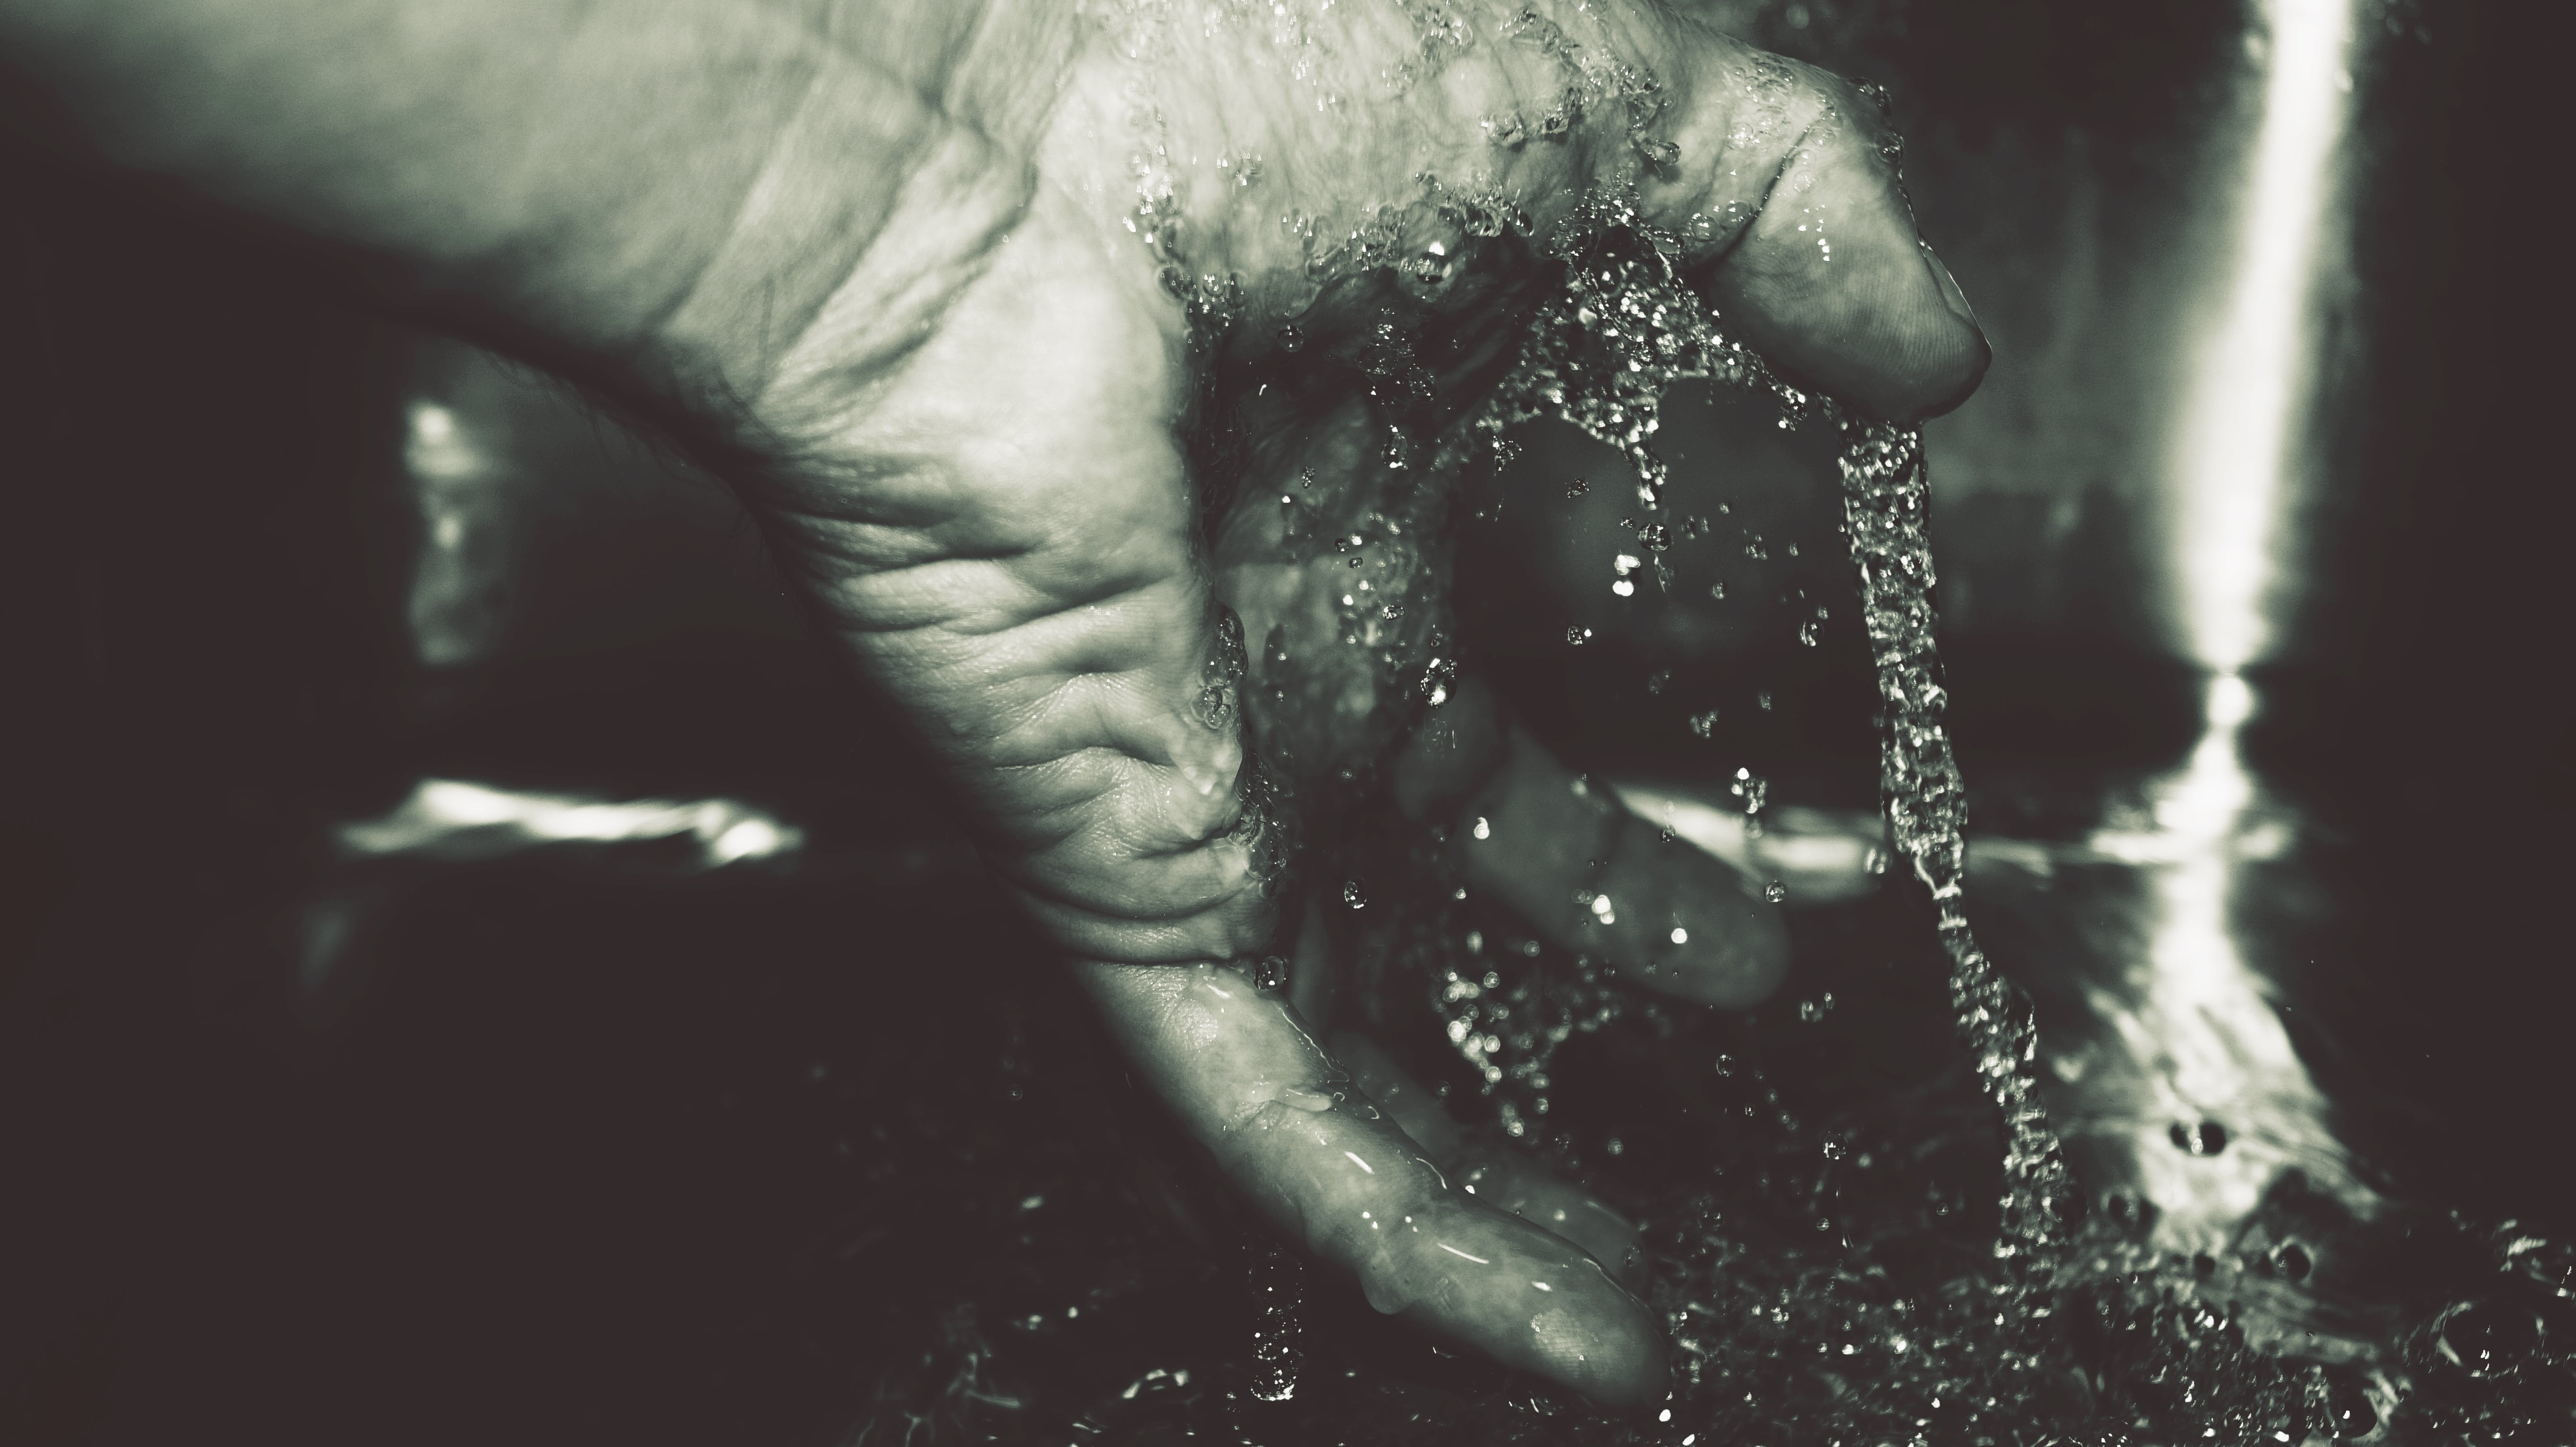 Human Hand With Water